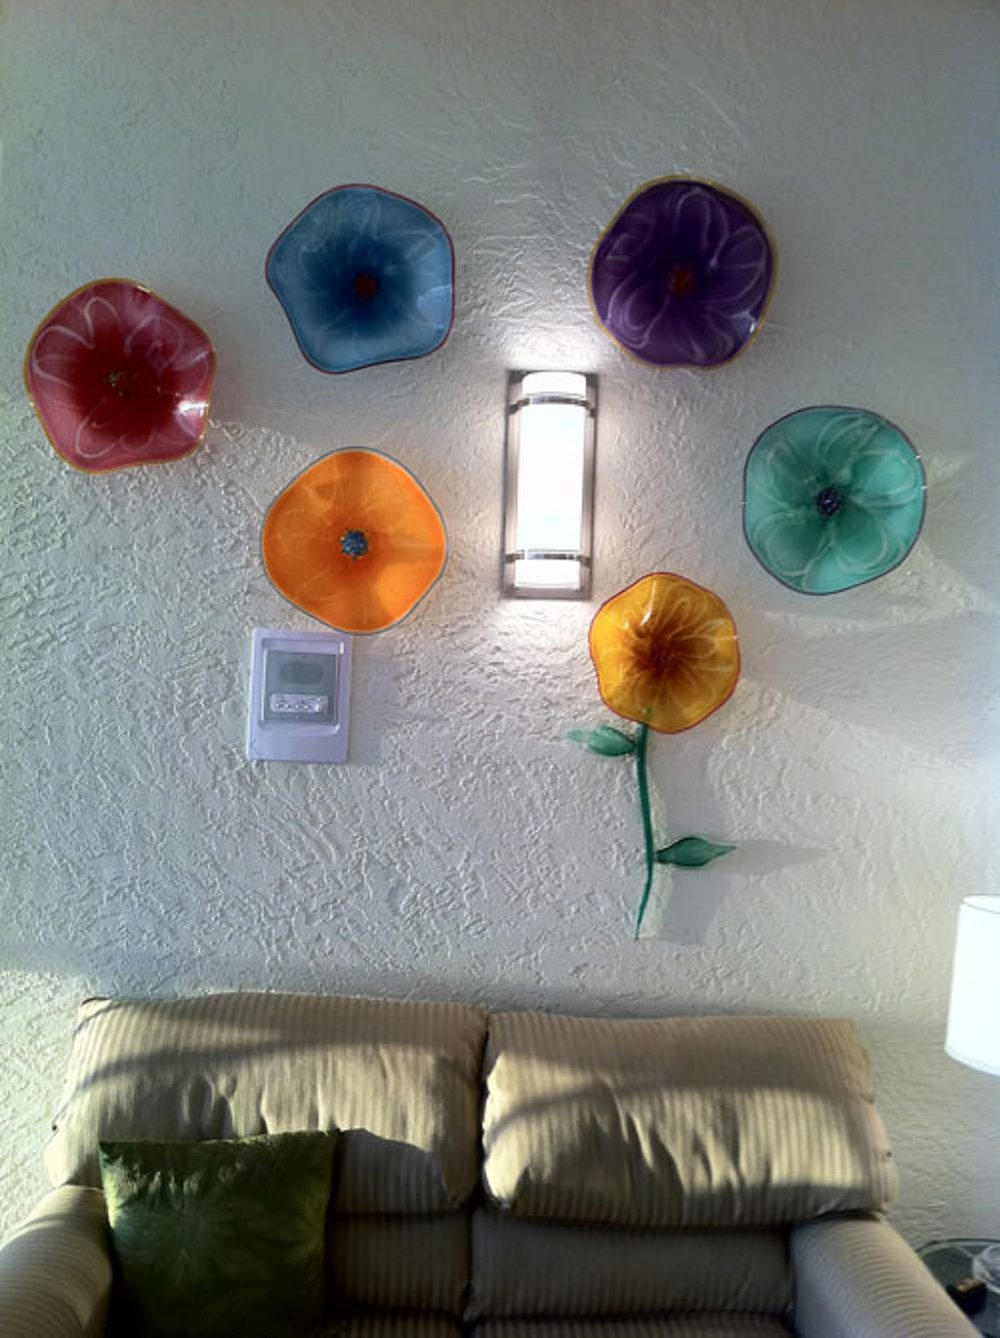 Copy of healing art glass wall flowers